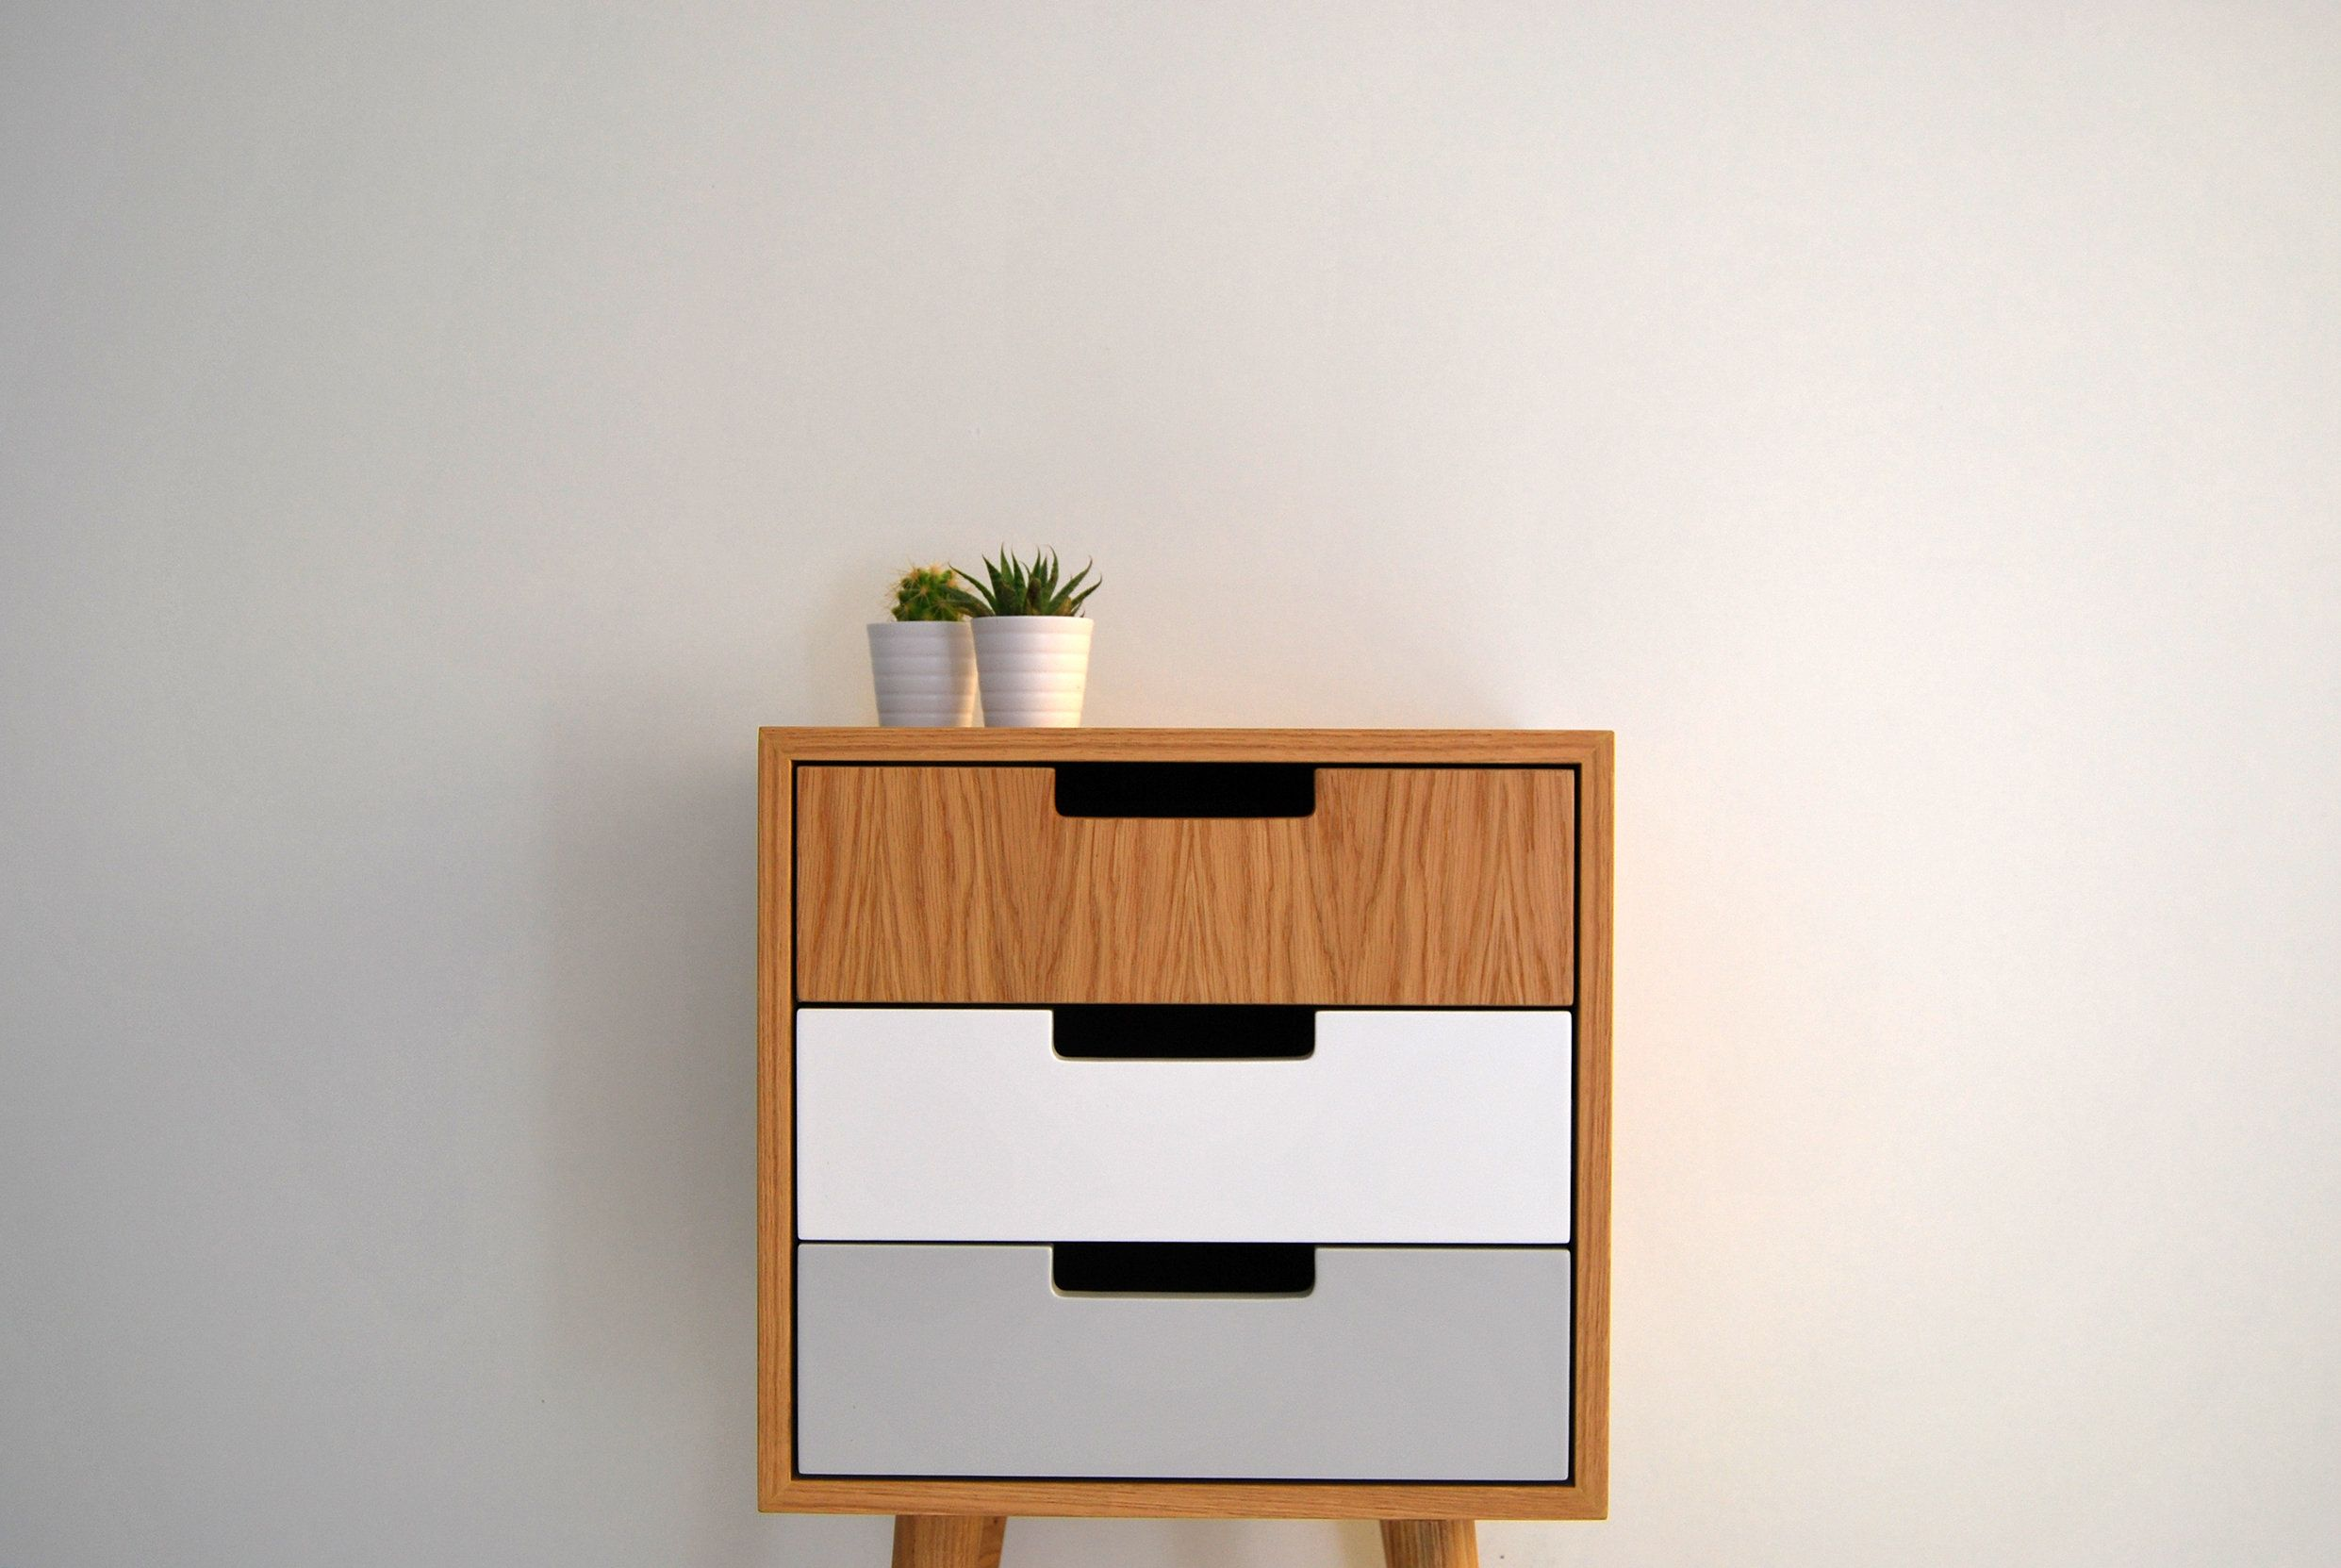 Pair Of Nightstand Bedside Table Side Table With One Drawer Lacquered In White Scandinavian Design Mid Century Modern Retro Modern Bedroom Decor Grey Modern Side Table Bedroom Modern Side Table